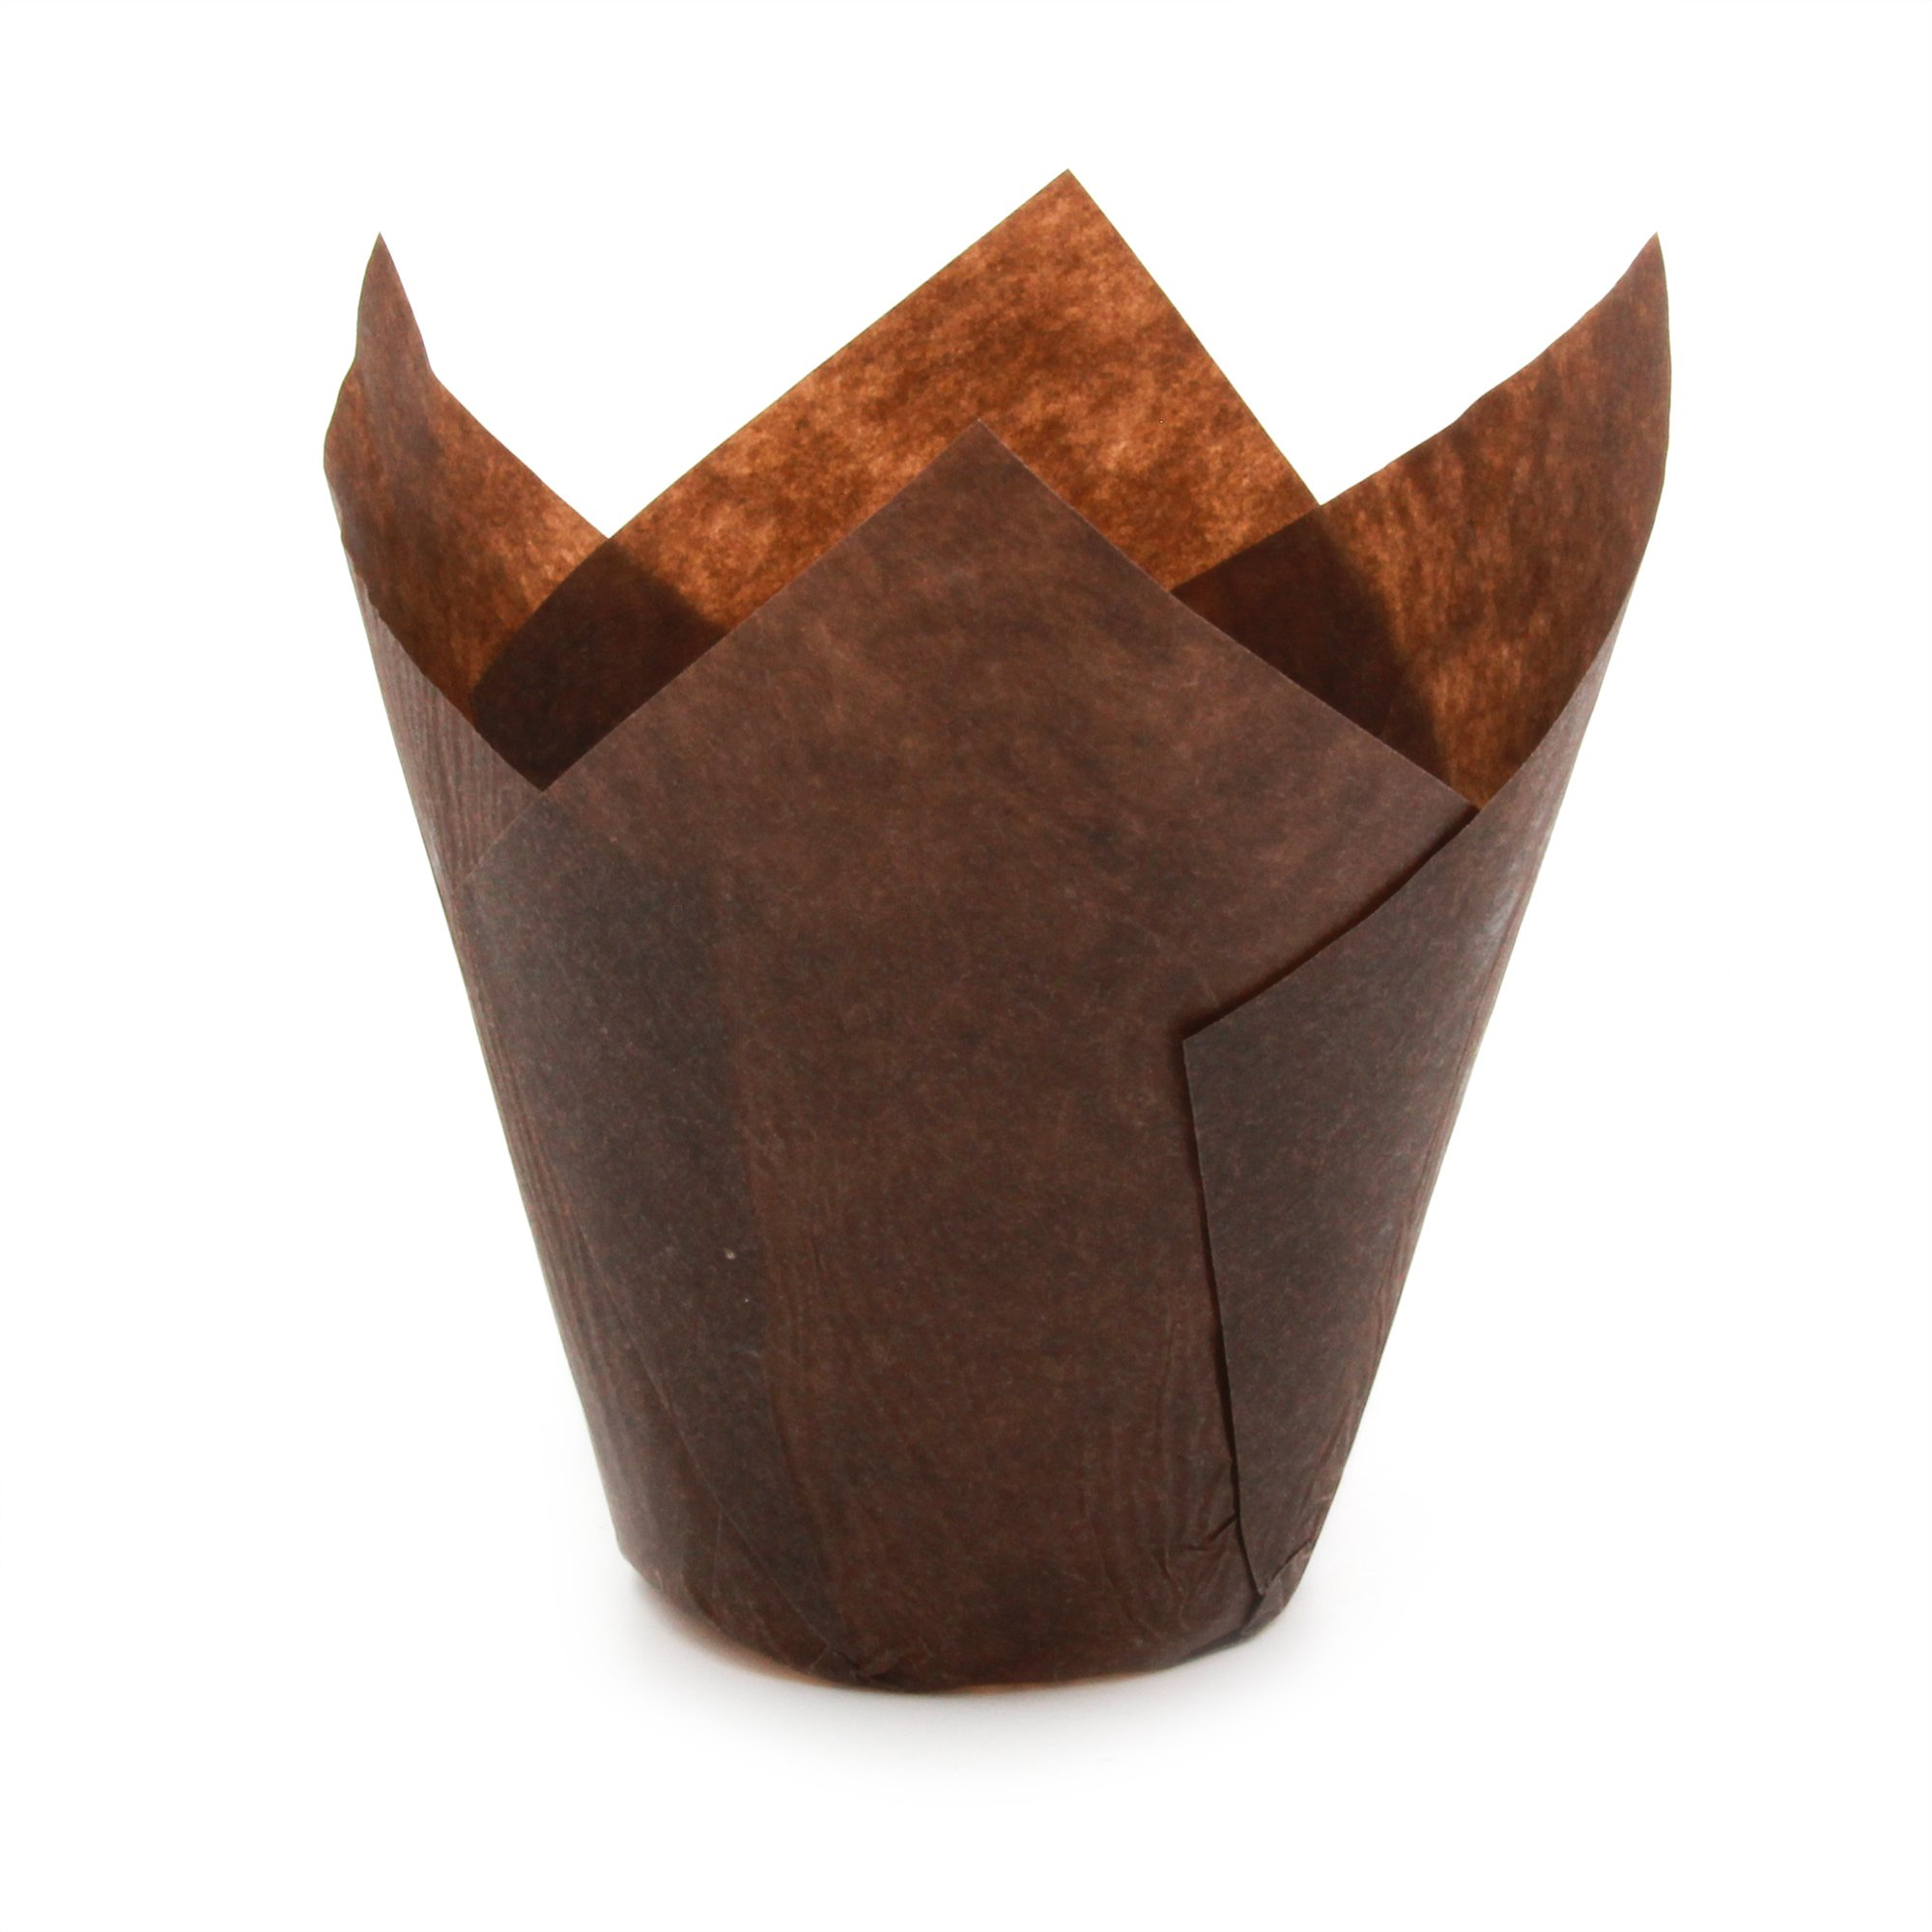 Tulip Cupcake Liner Brown Paper Baking Cups easy Release Muffin cup / No need To Spray Cup Perfect for Baking Muffins and Cupcakes,Medium Size: Tip H 3-17/64'' x 1-57/64'' ,(2000 pcs)